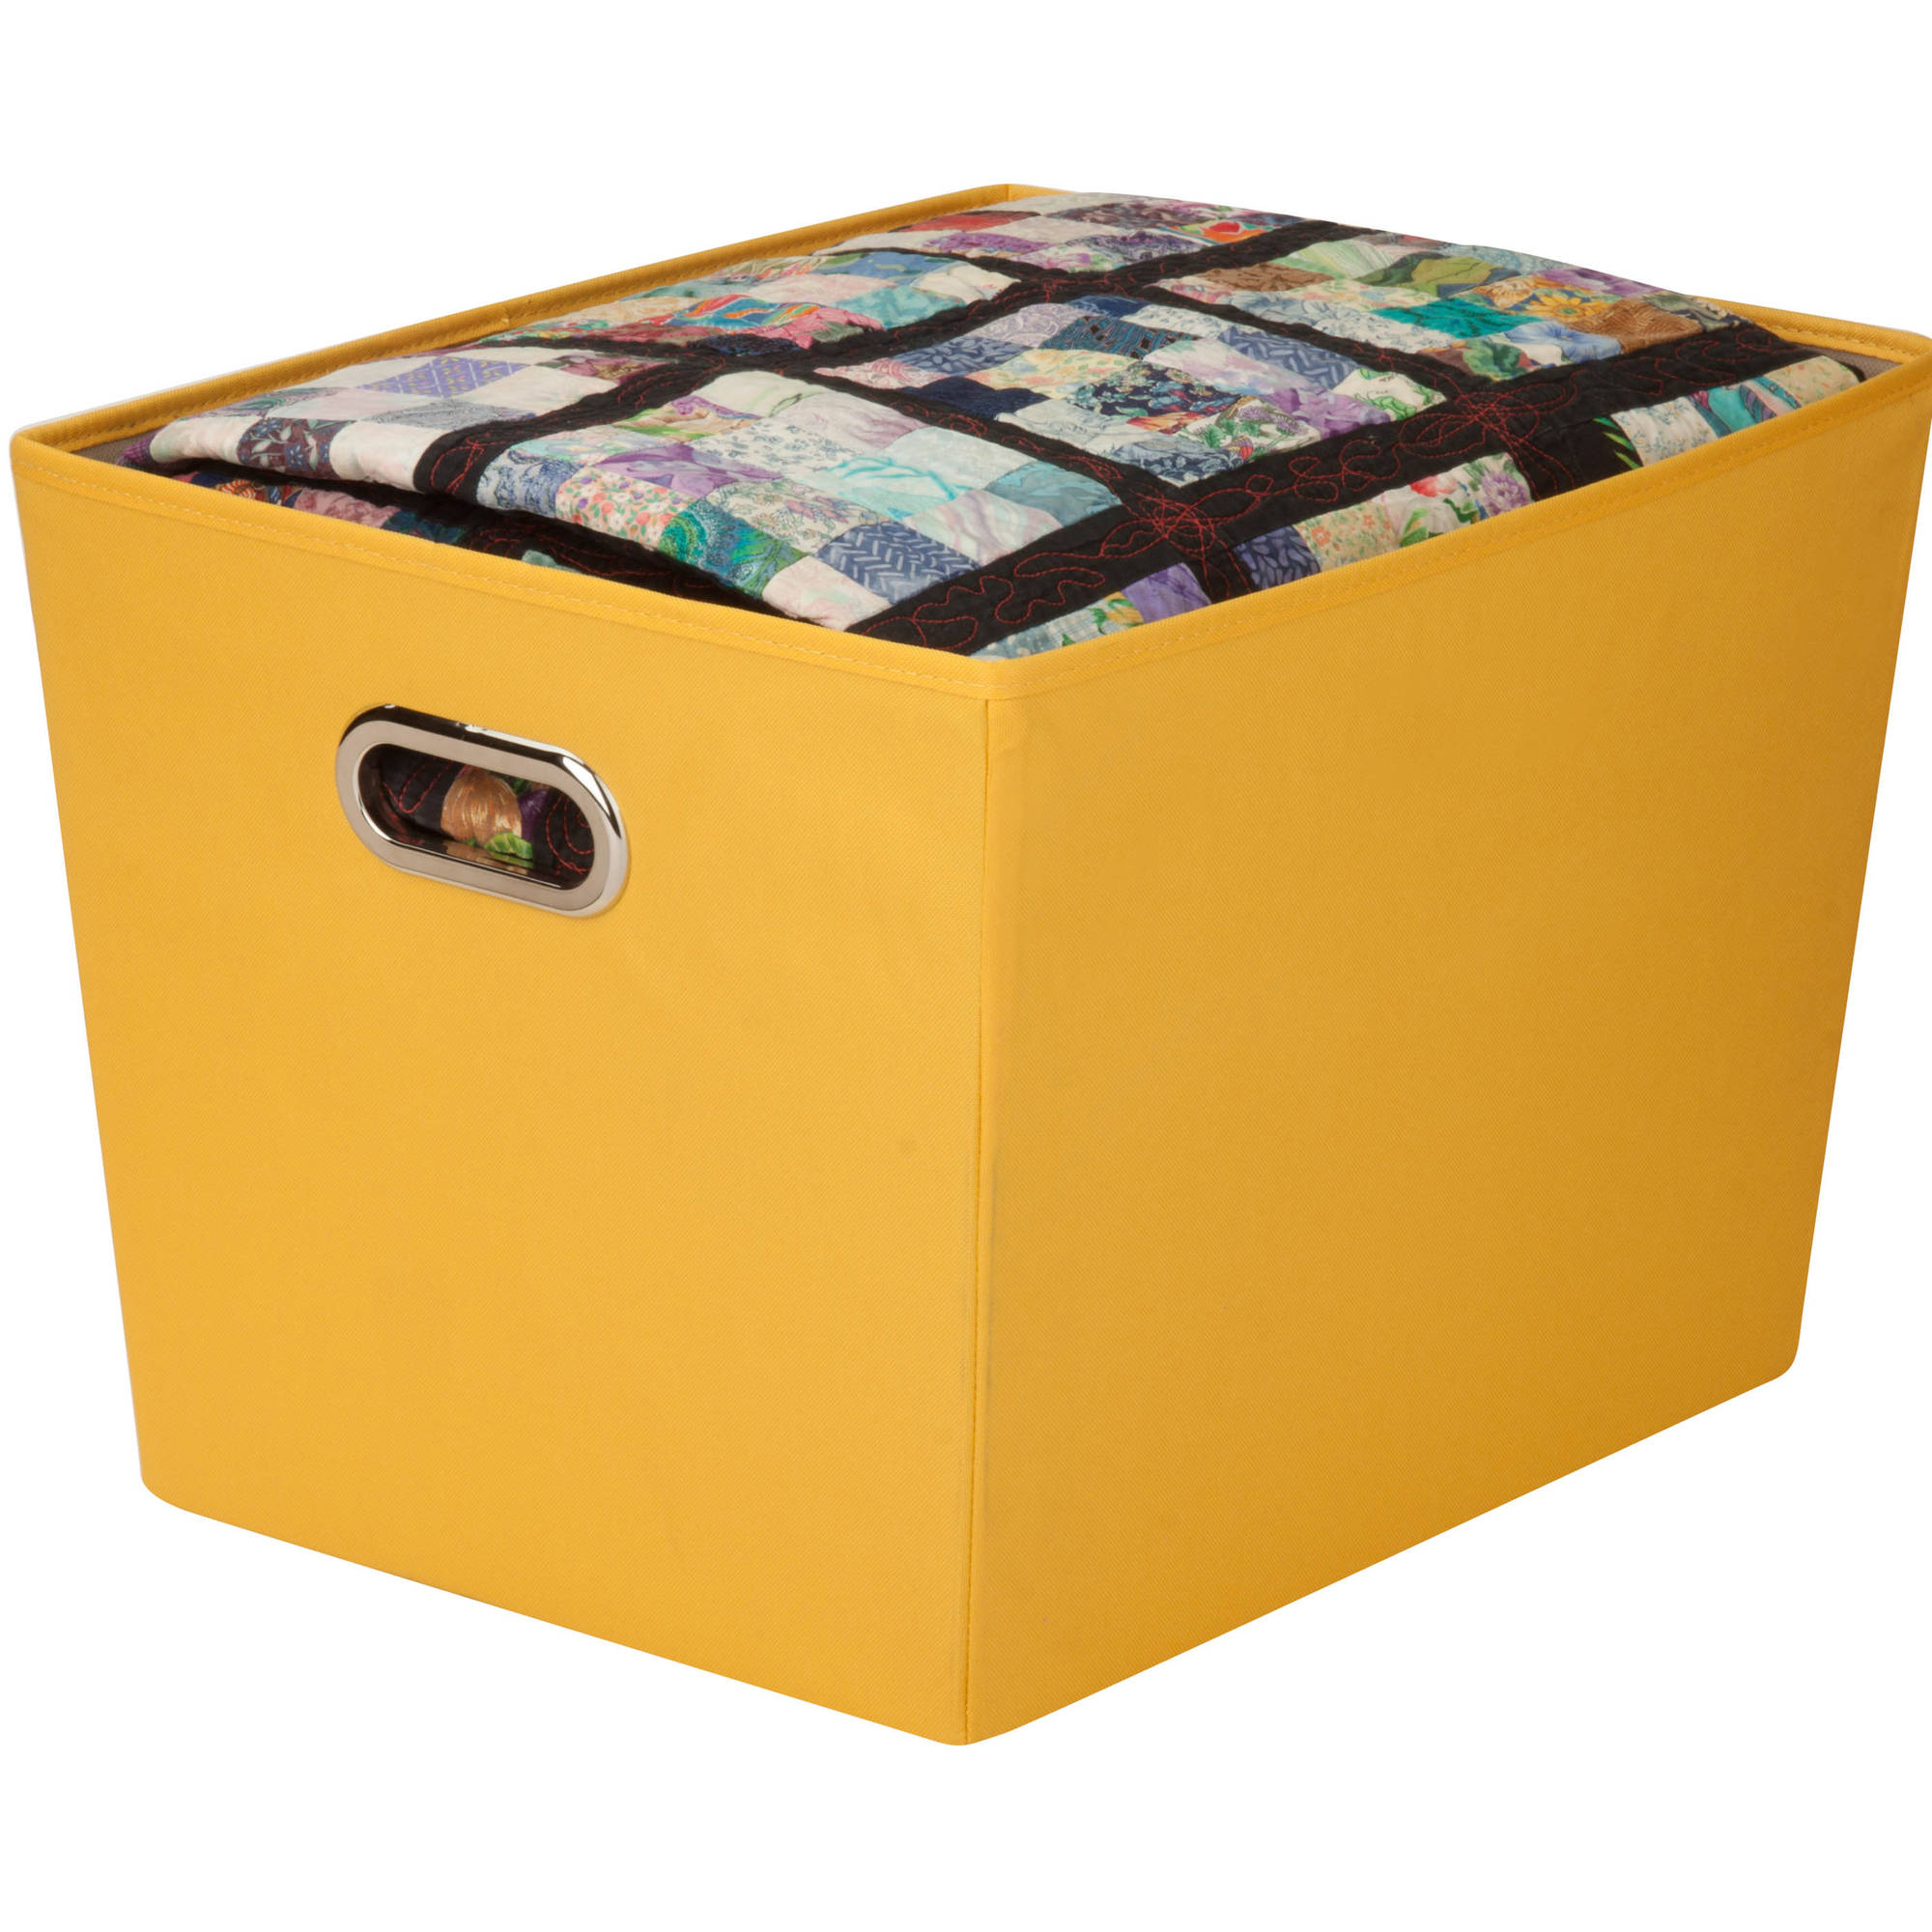 Honey Can Do Large Decorative Storage Bin with Handles Multicolor  sc 1 st  Walmart & Decorative Storage Boxes